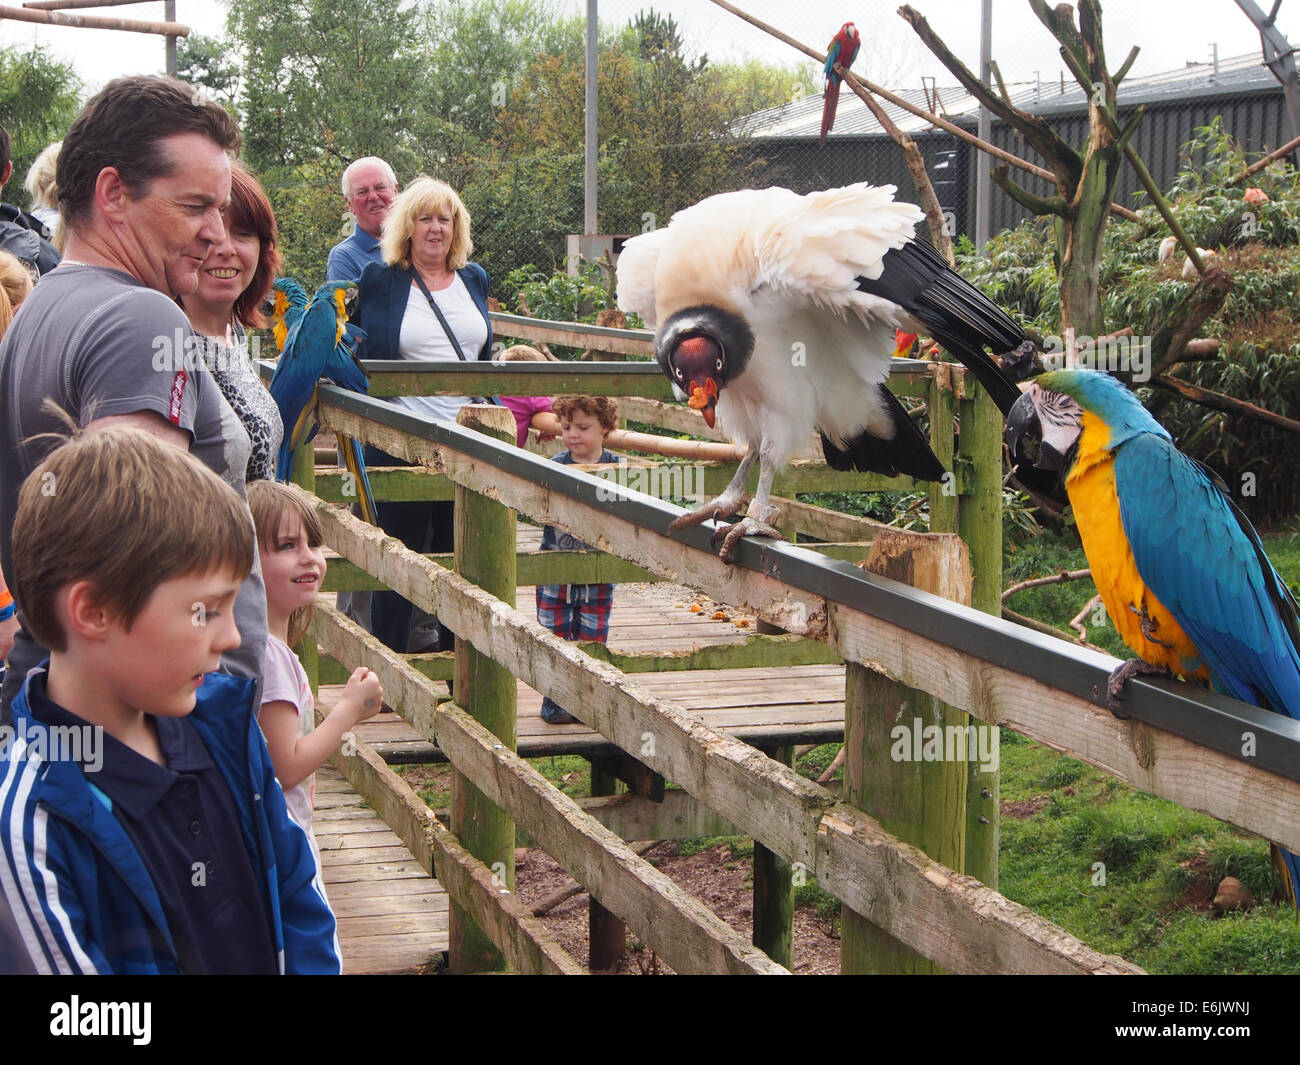 visitors to the south lakes safari zoo watch the free flying birds